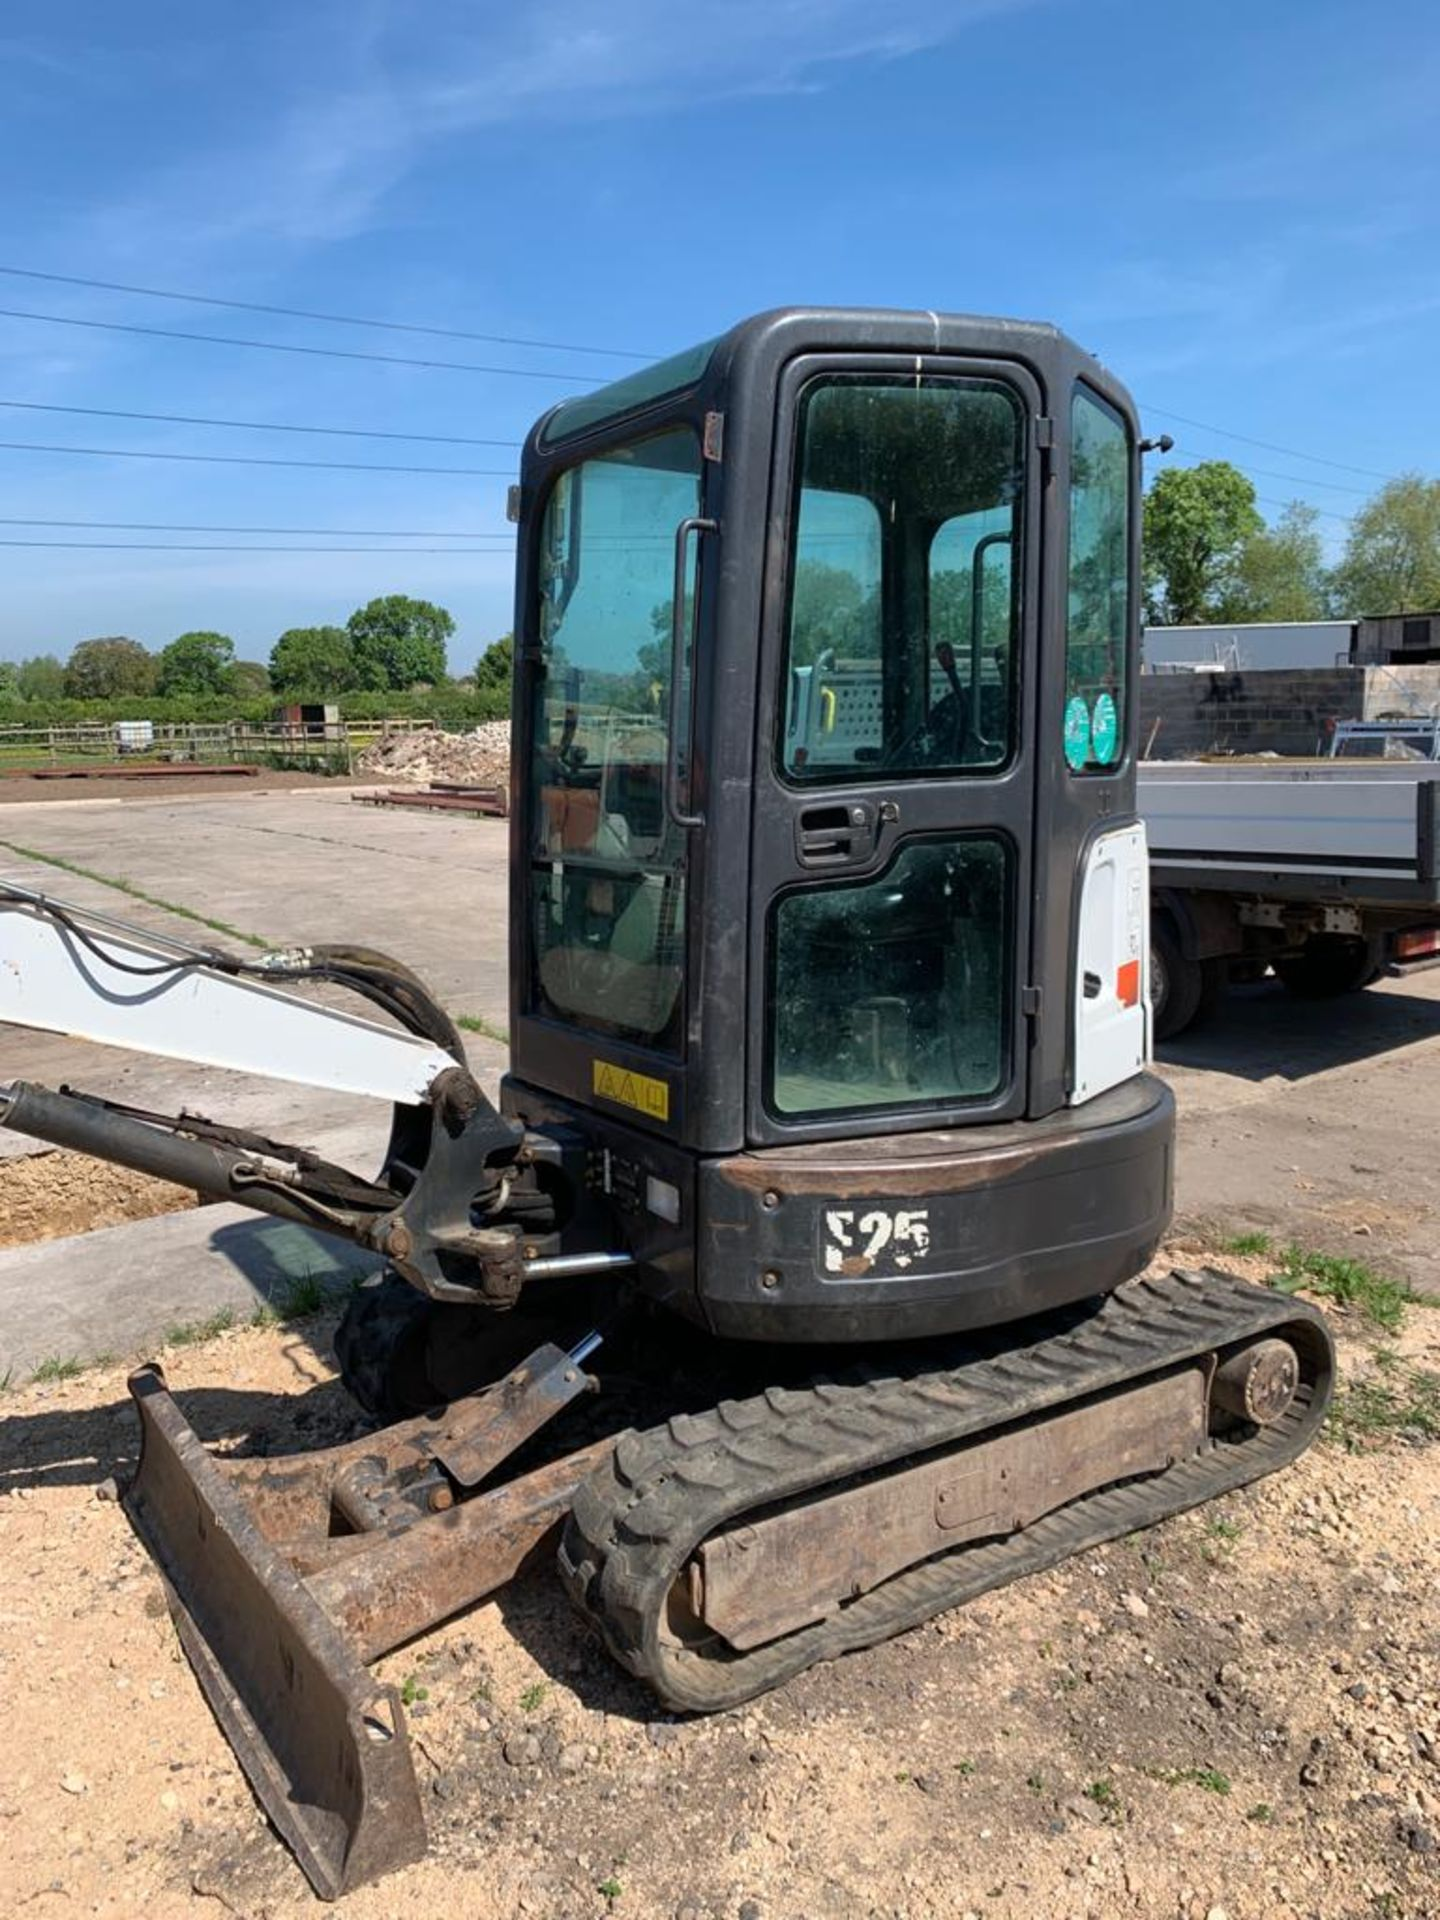 2014 BOBCAT E25 RUBBER TRACKED COMPACT EXCAVATOR / DIGGER, 15.3 KW, MASS 2516 KG *PLUS VAT* - Image 5 of 19